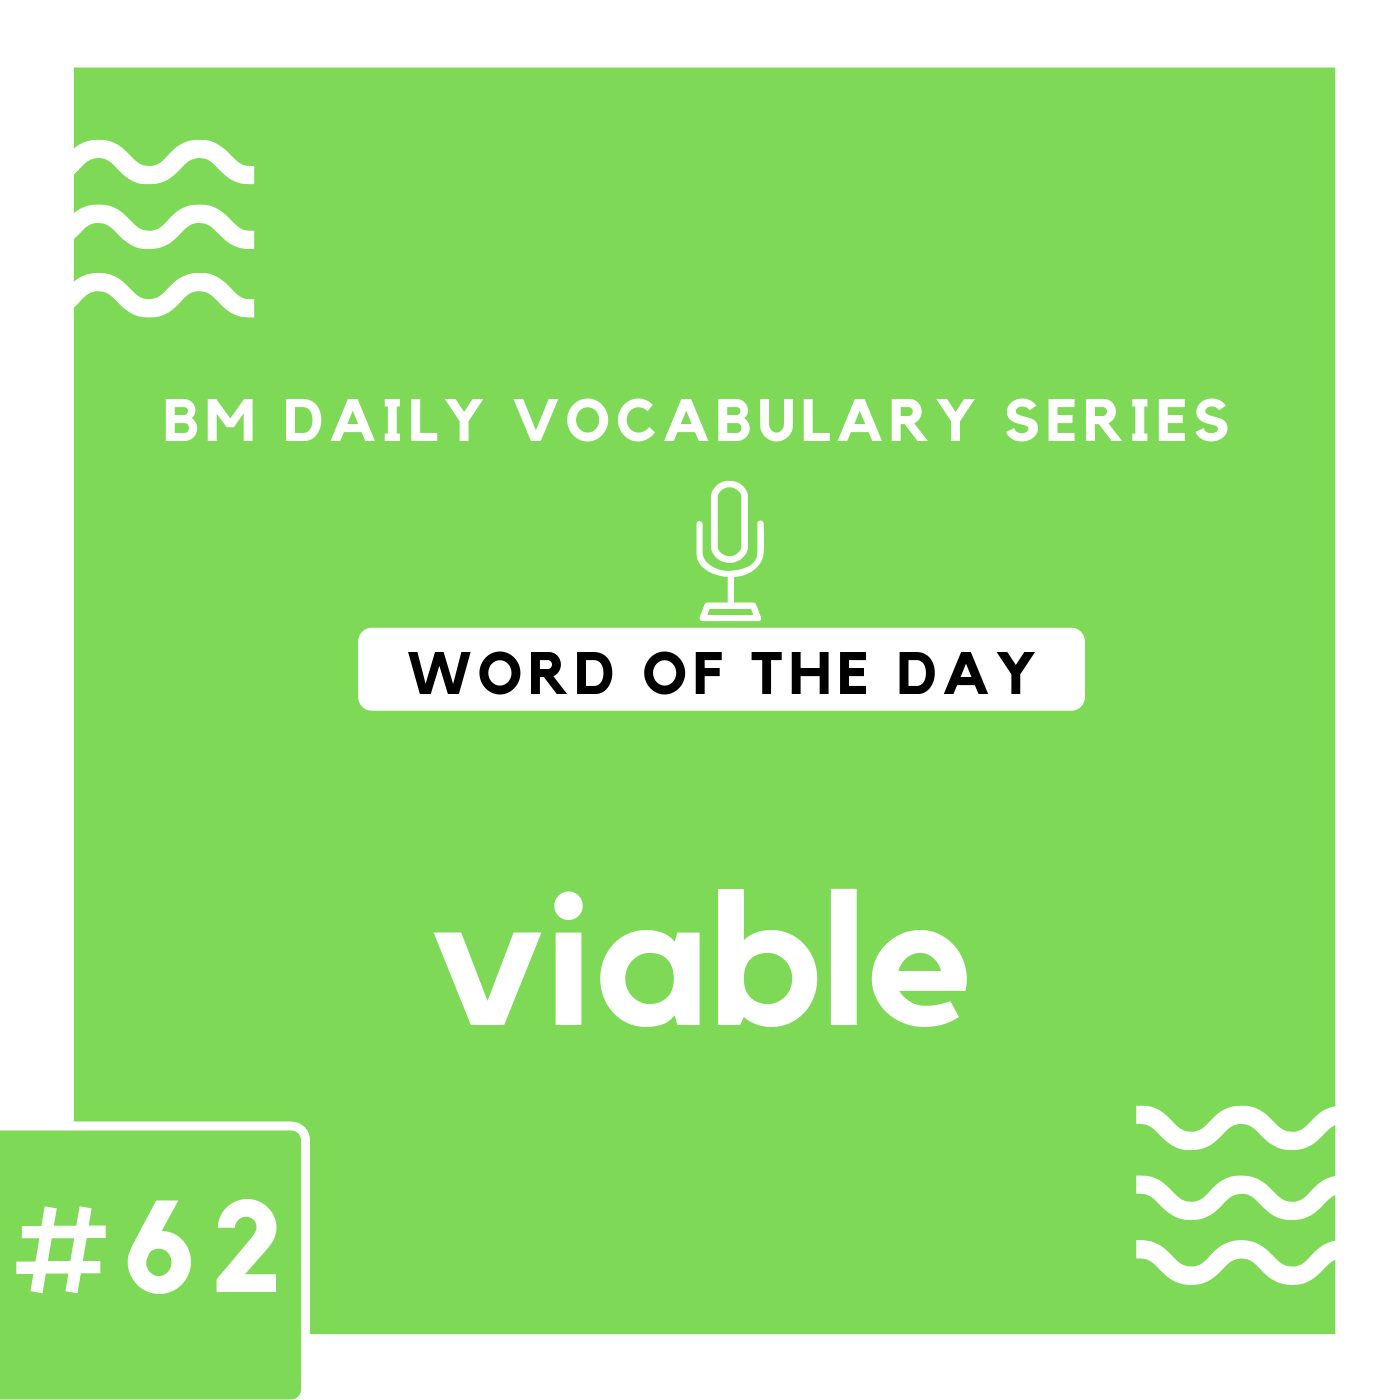 200 BM Daily Vocabulary #62 | viable